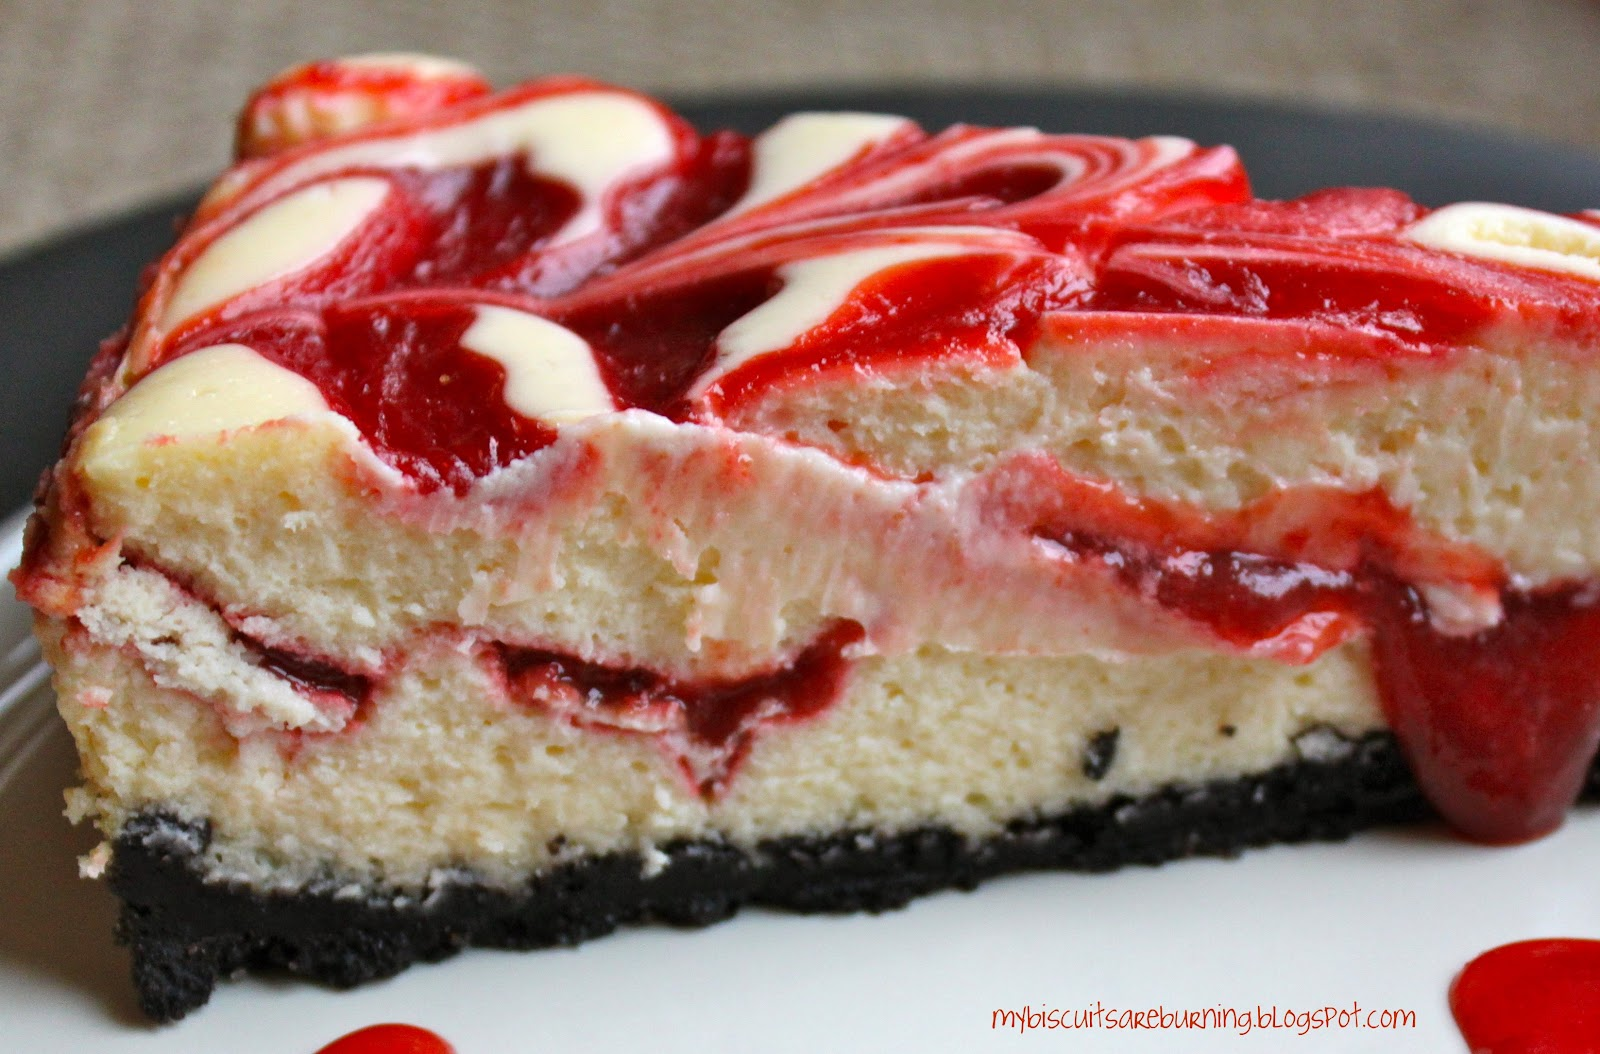 My Biscuits are Burning: Cherry Swirled Cheesecake